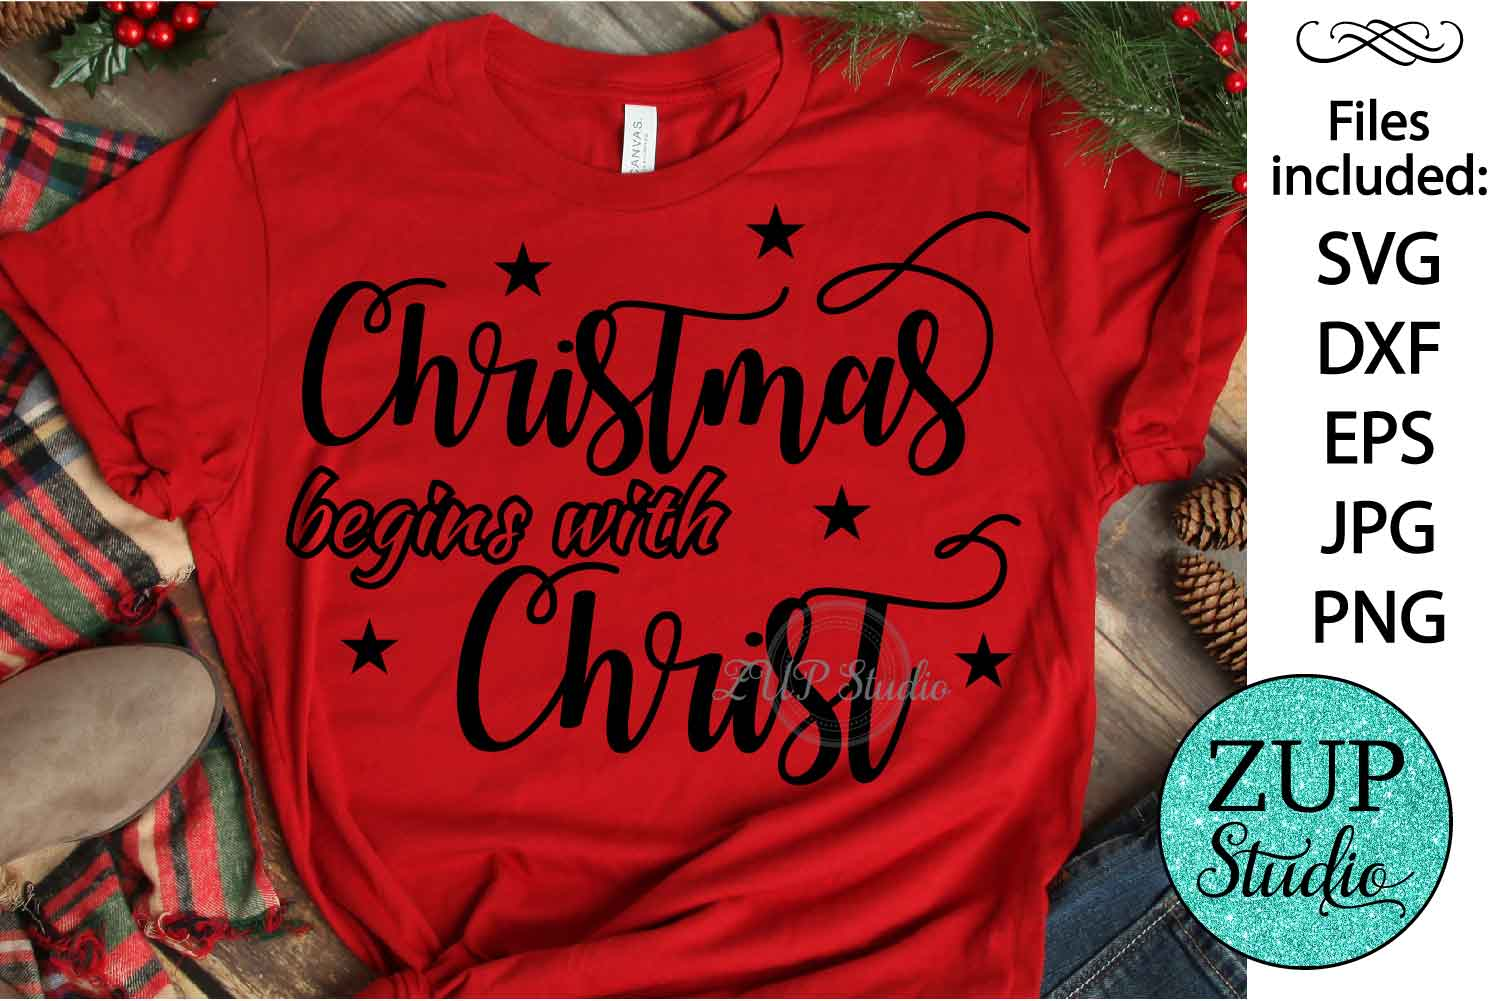 Christmas begins with Christ cutting files svg 29 example image 1